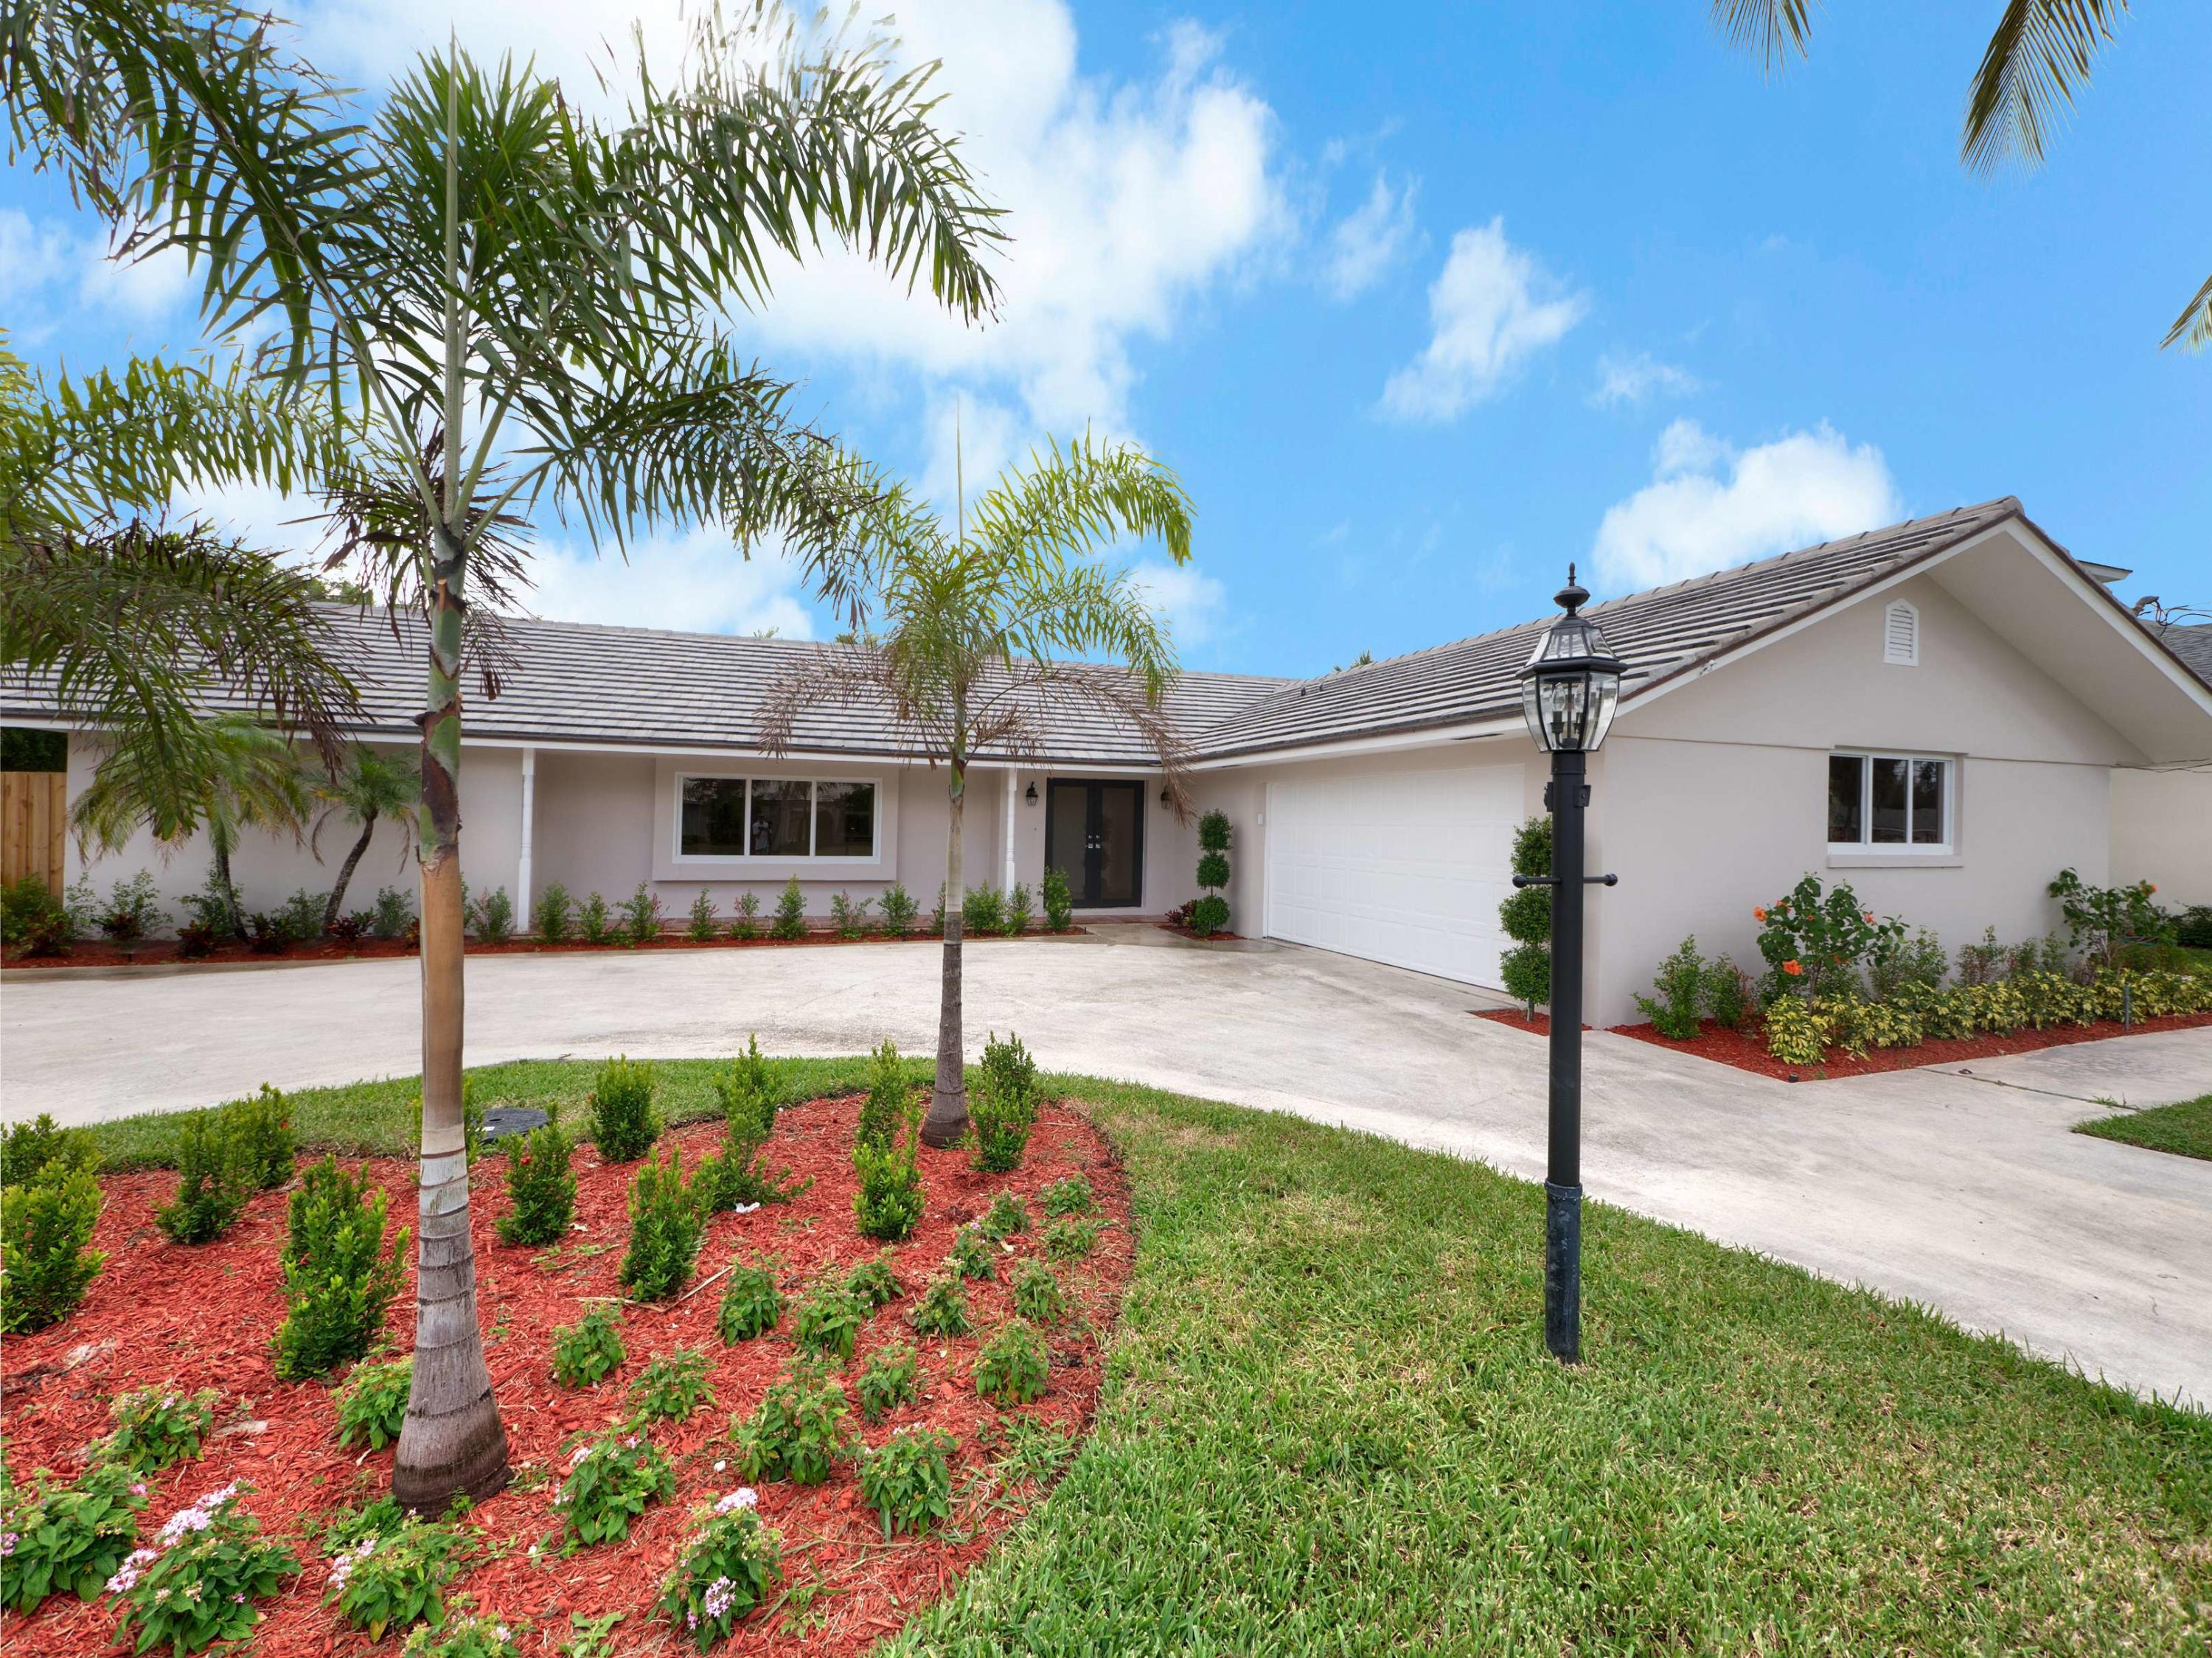 1568 Point Way, North Palm Beach, Florida 33408, 4 Bedrooms Bedrooms, ,3 BathroomsBathrooms,A,Single family,Point,RX-10419223